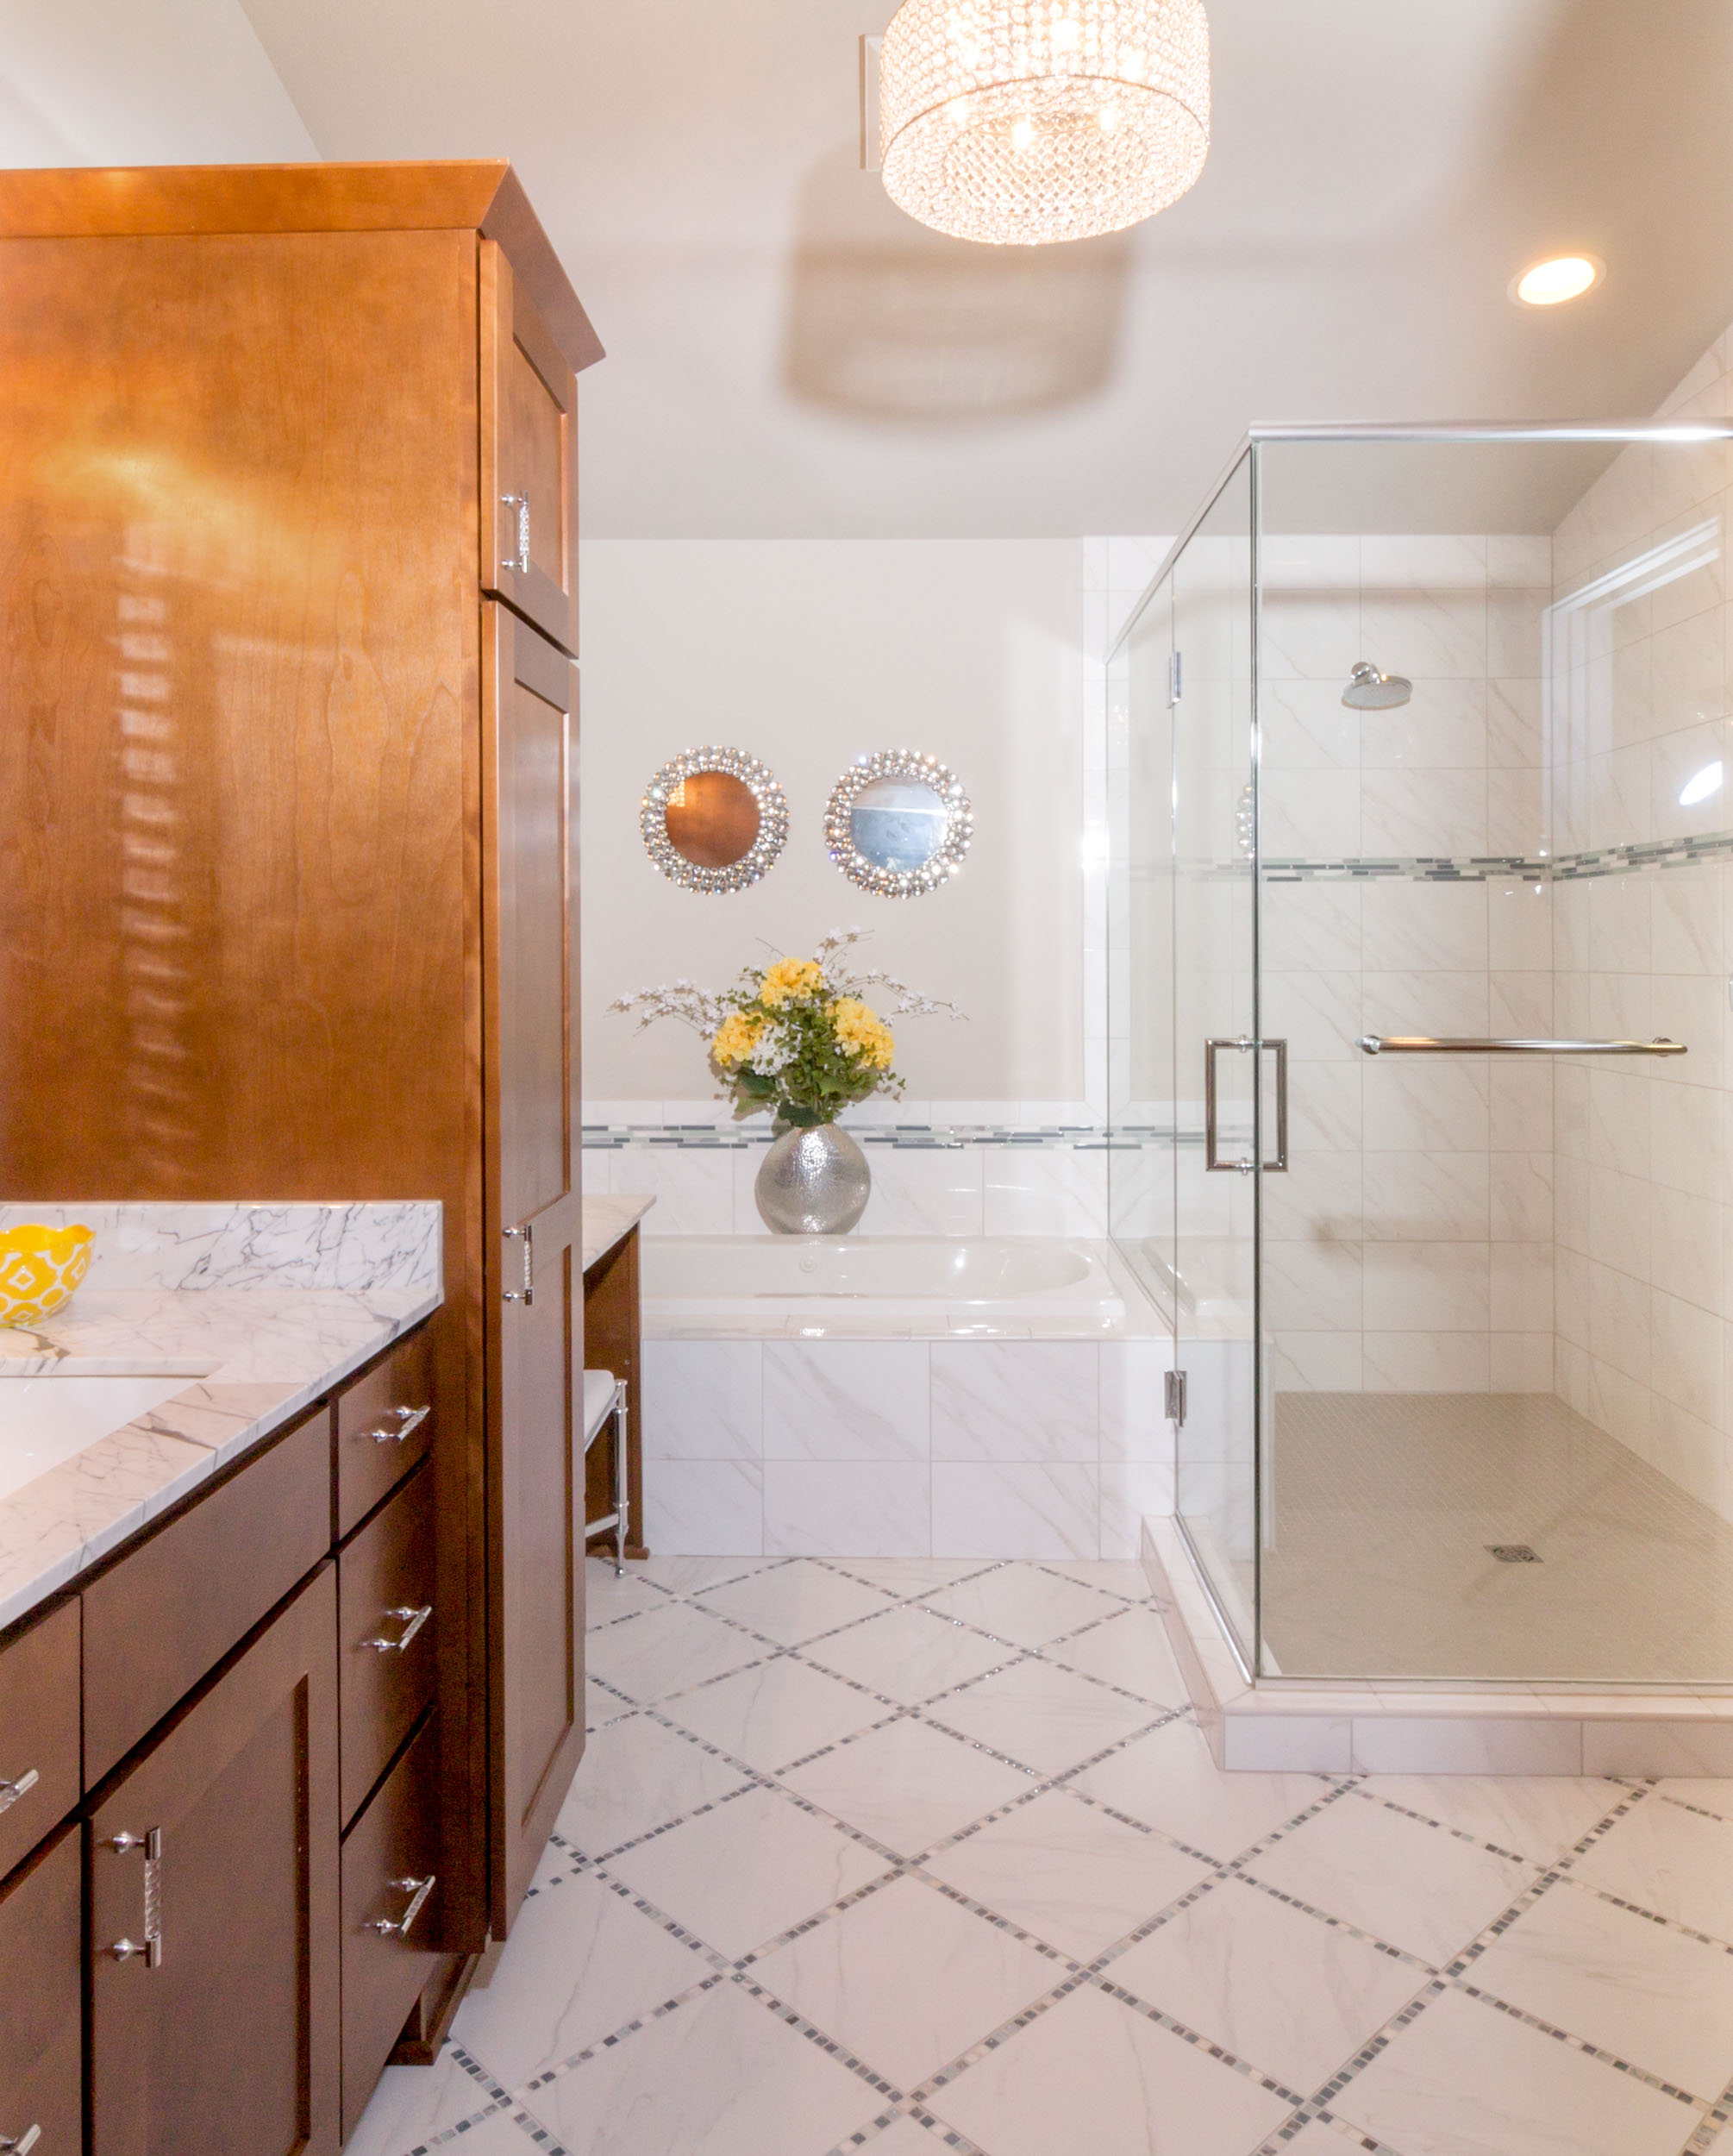 - This bathroom floor has a single stripe of mosaic in BETWEEN each square/diamond floor tile, creating a distinct grid pattern that carefully ties in with the tile design of the tub and shower surround.